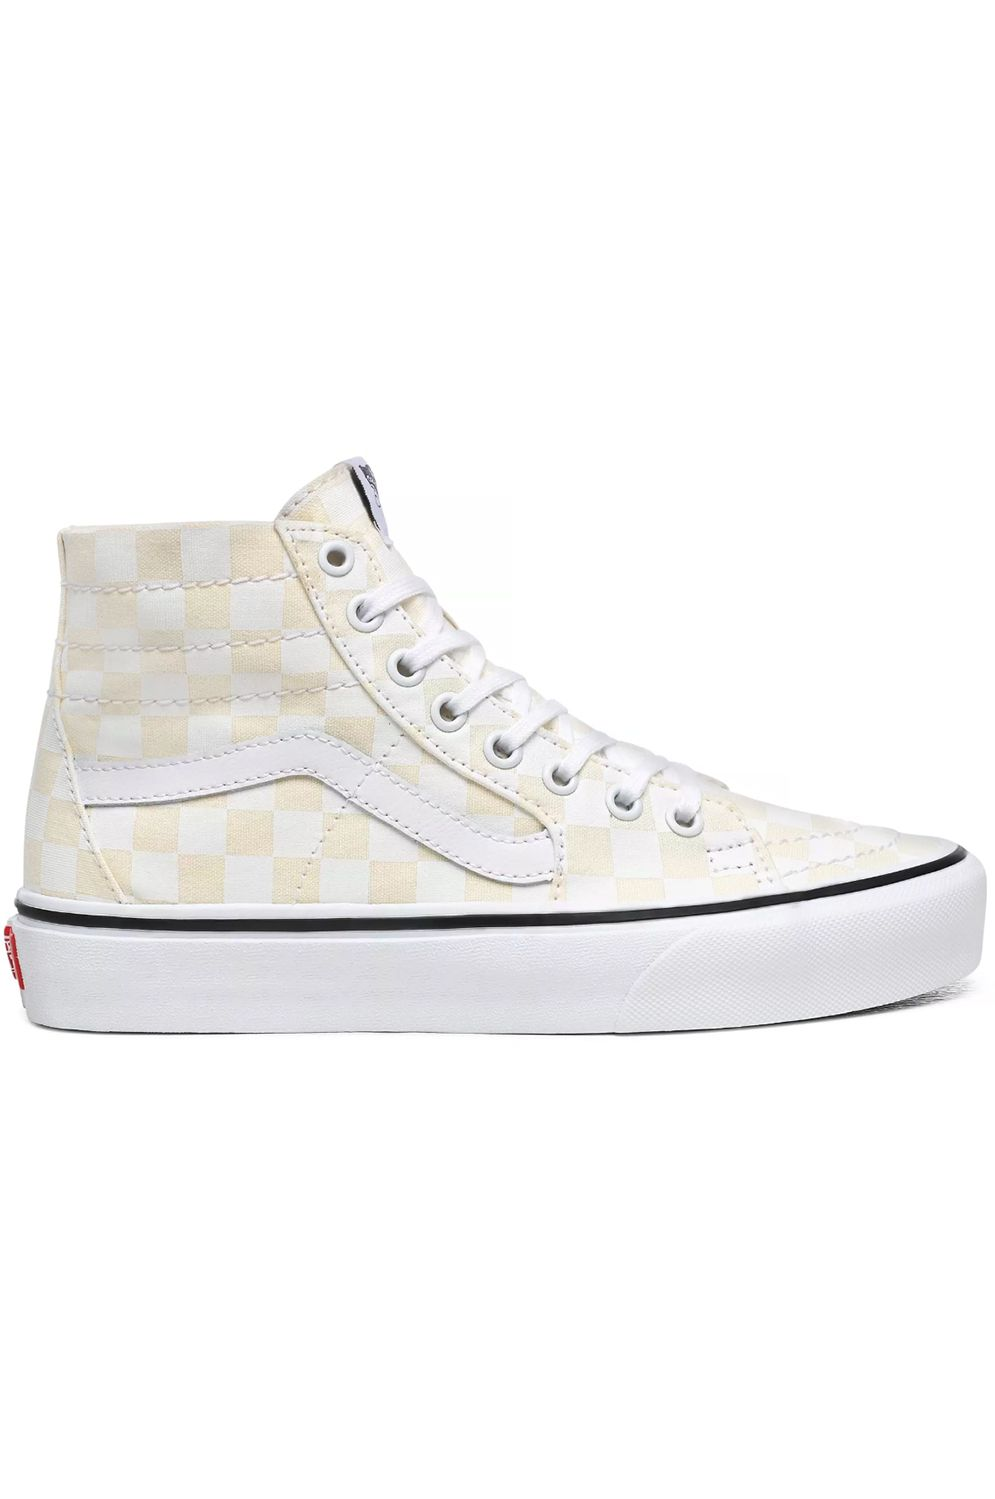 Vans Shoes SK8-HI TAPERED (Checkerboard) White/True White